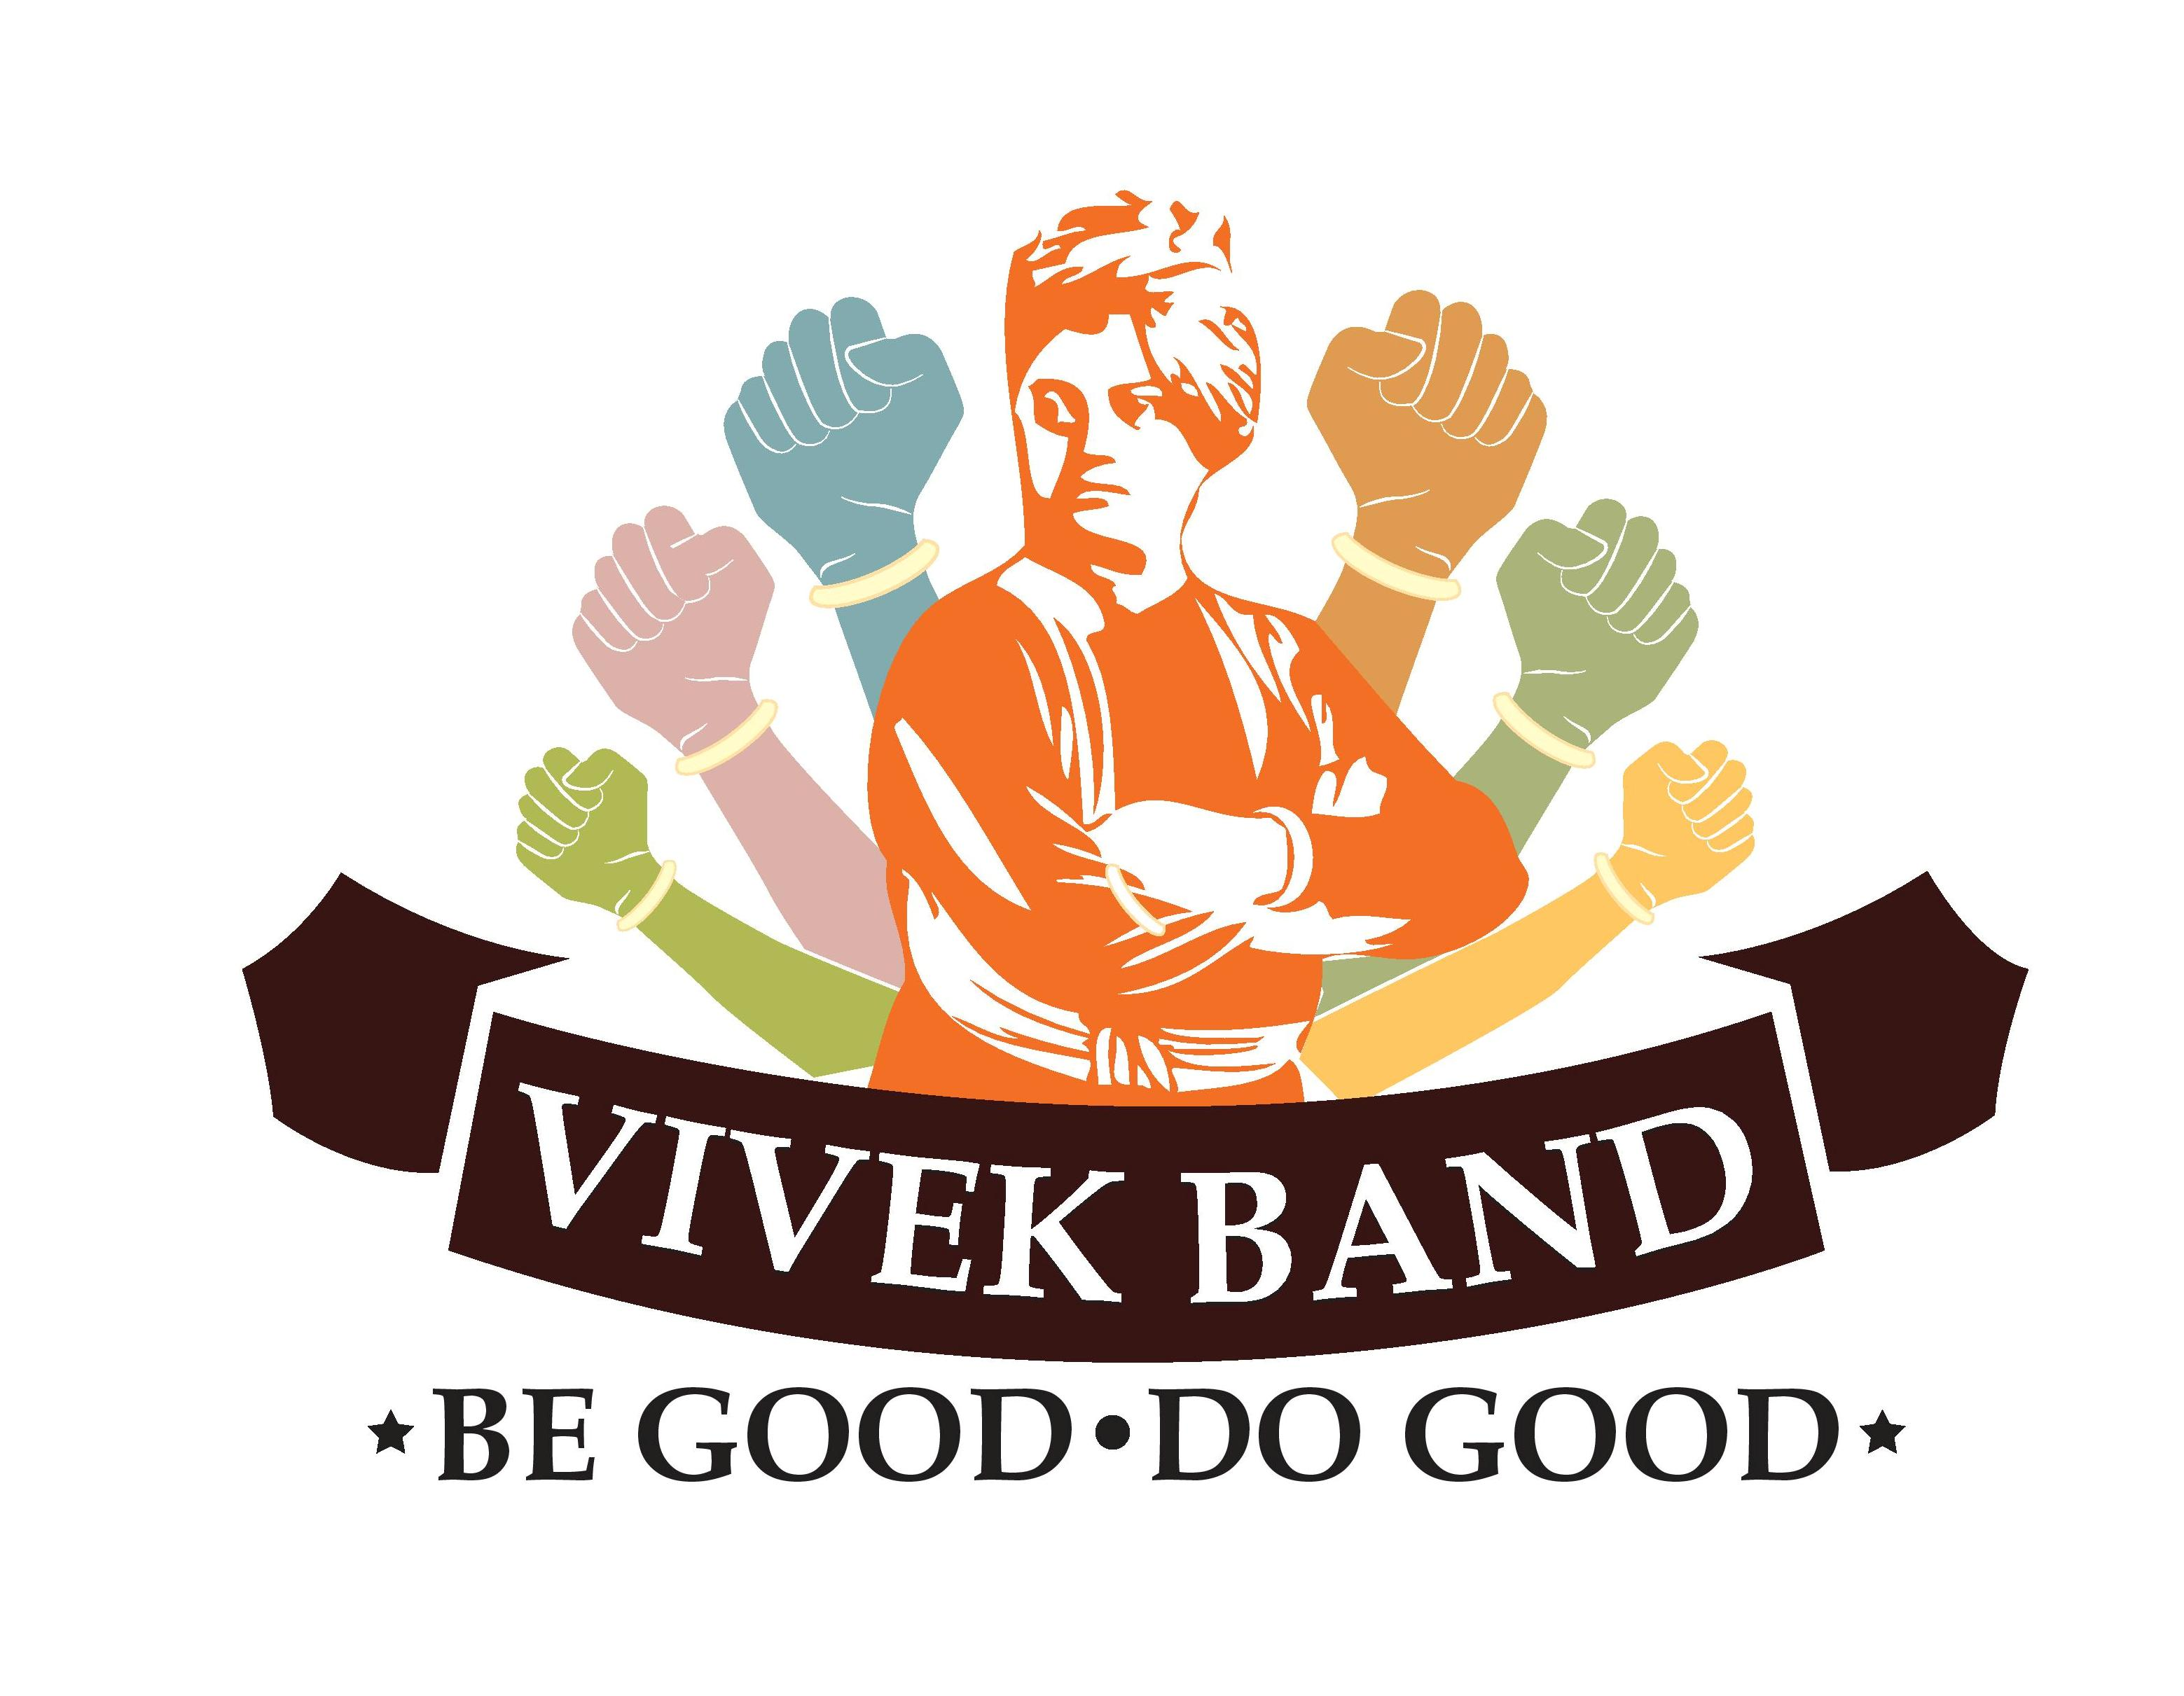 Karnataka Statewide VIVEK BAND youth campaign to begin on January 12, 2019 #VivekBand